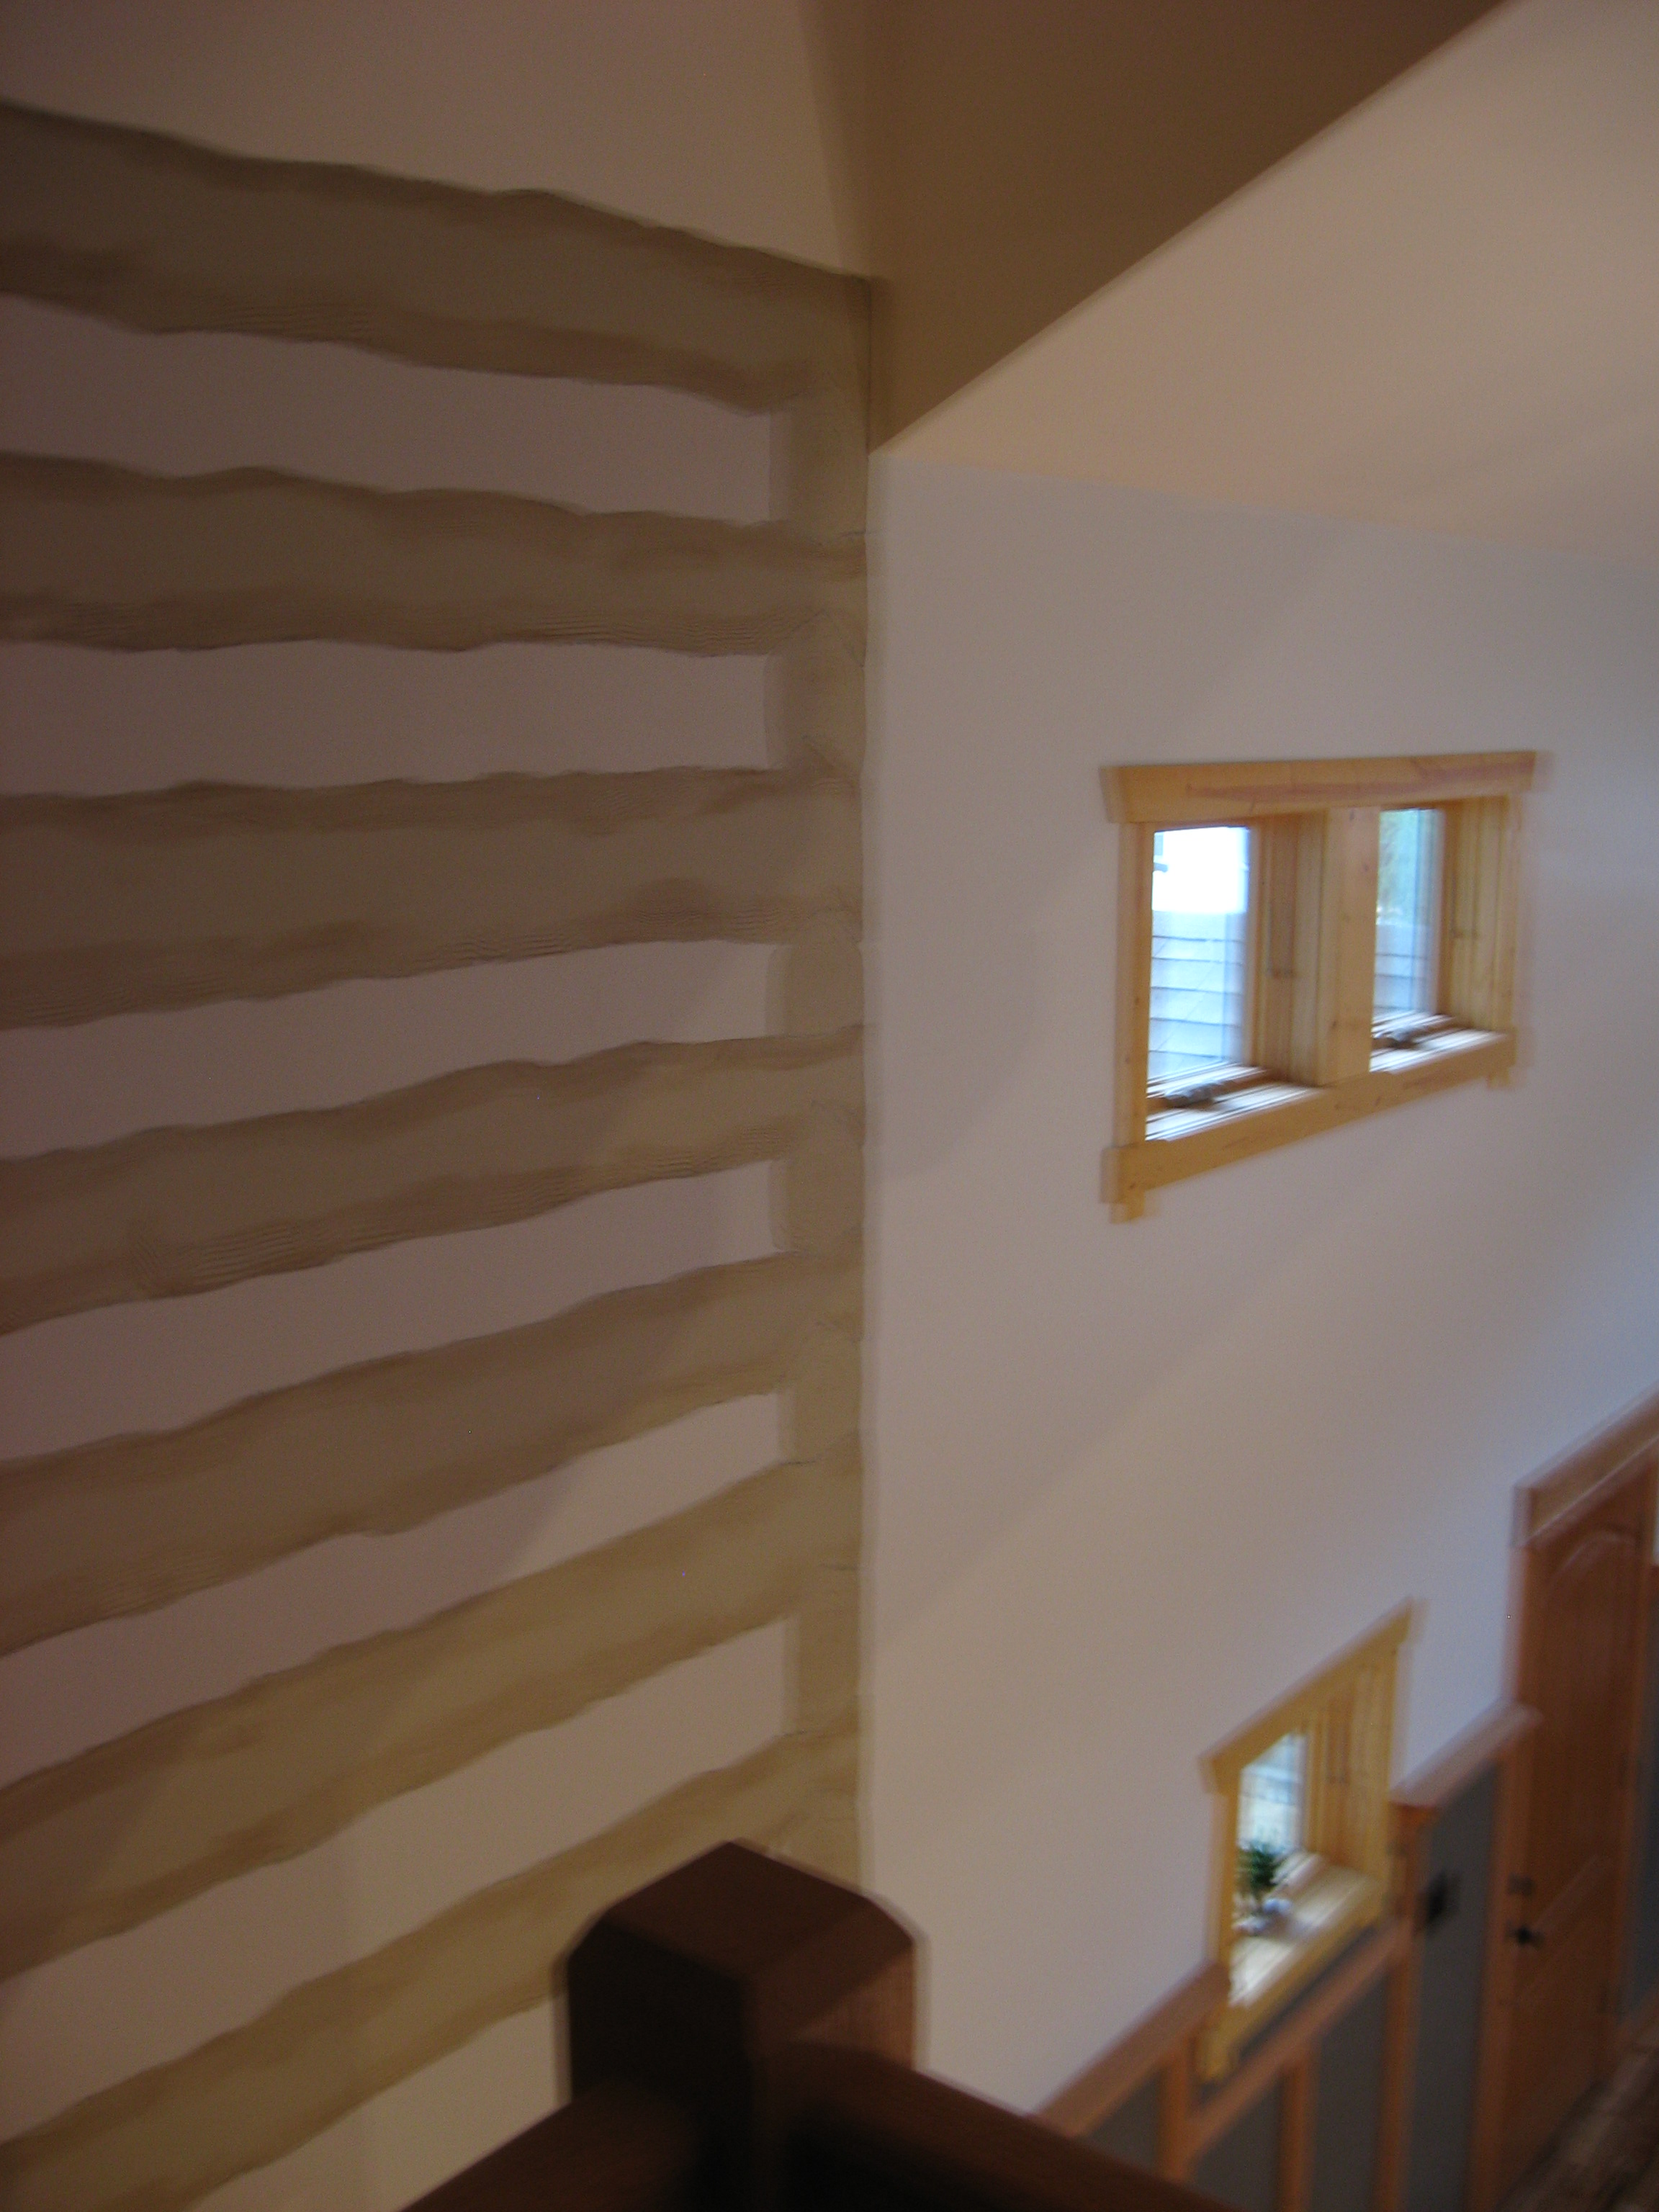 After:  the homeowner, an artist, painted this drywall to resemble the existing logs inside of it.